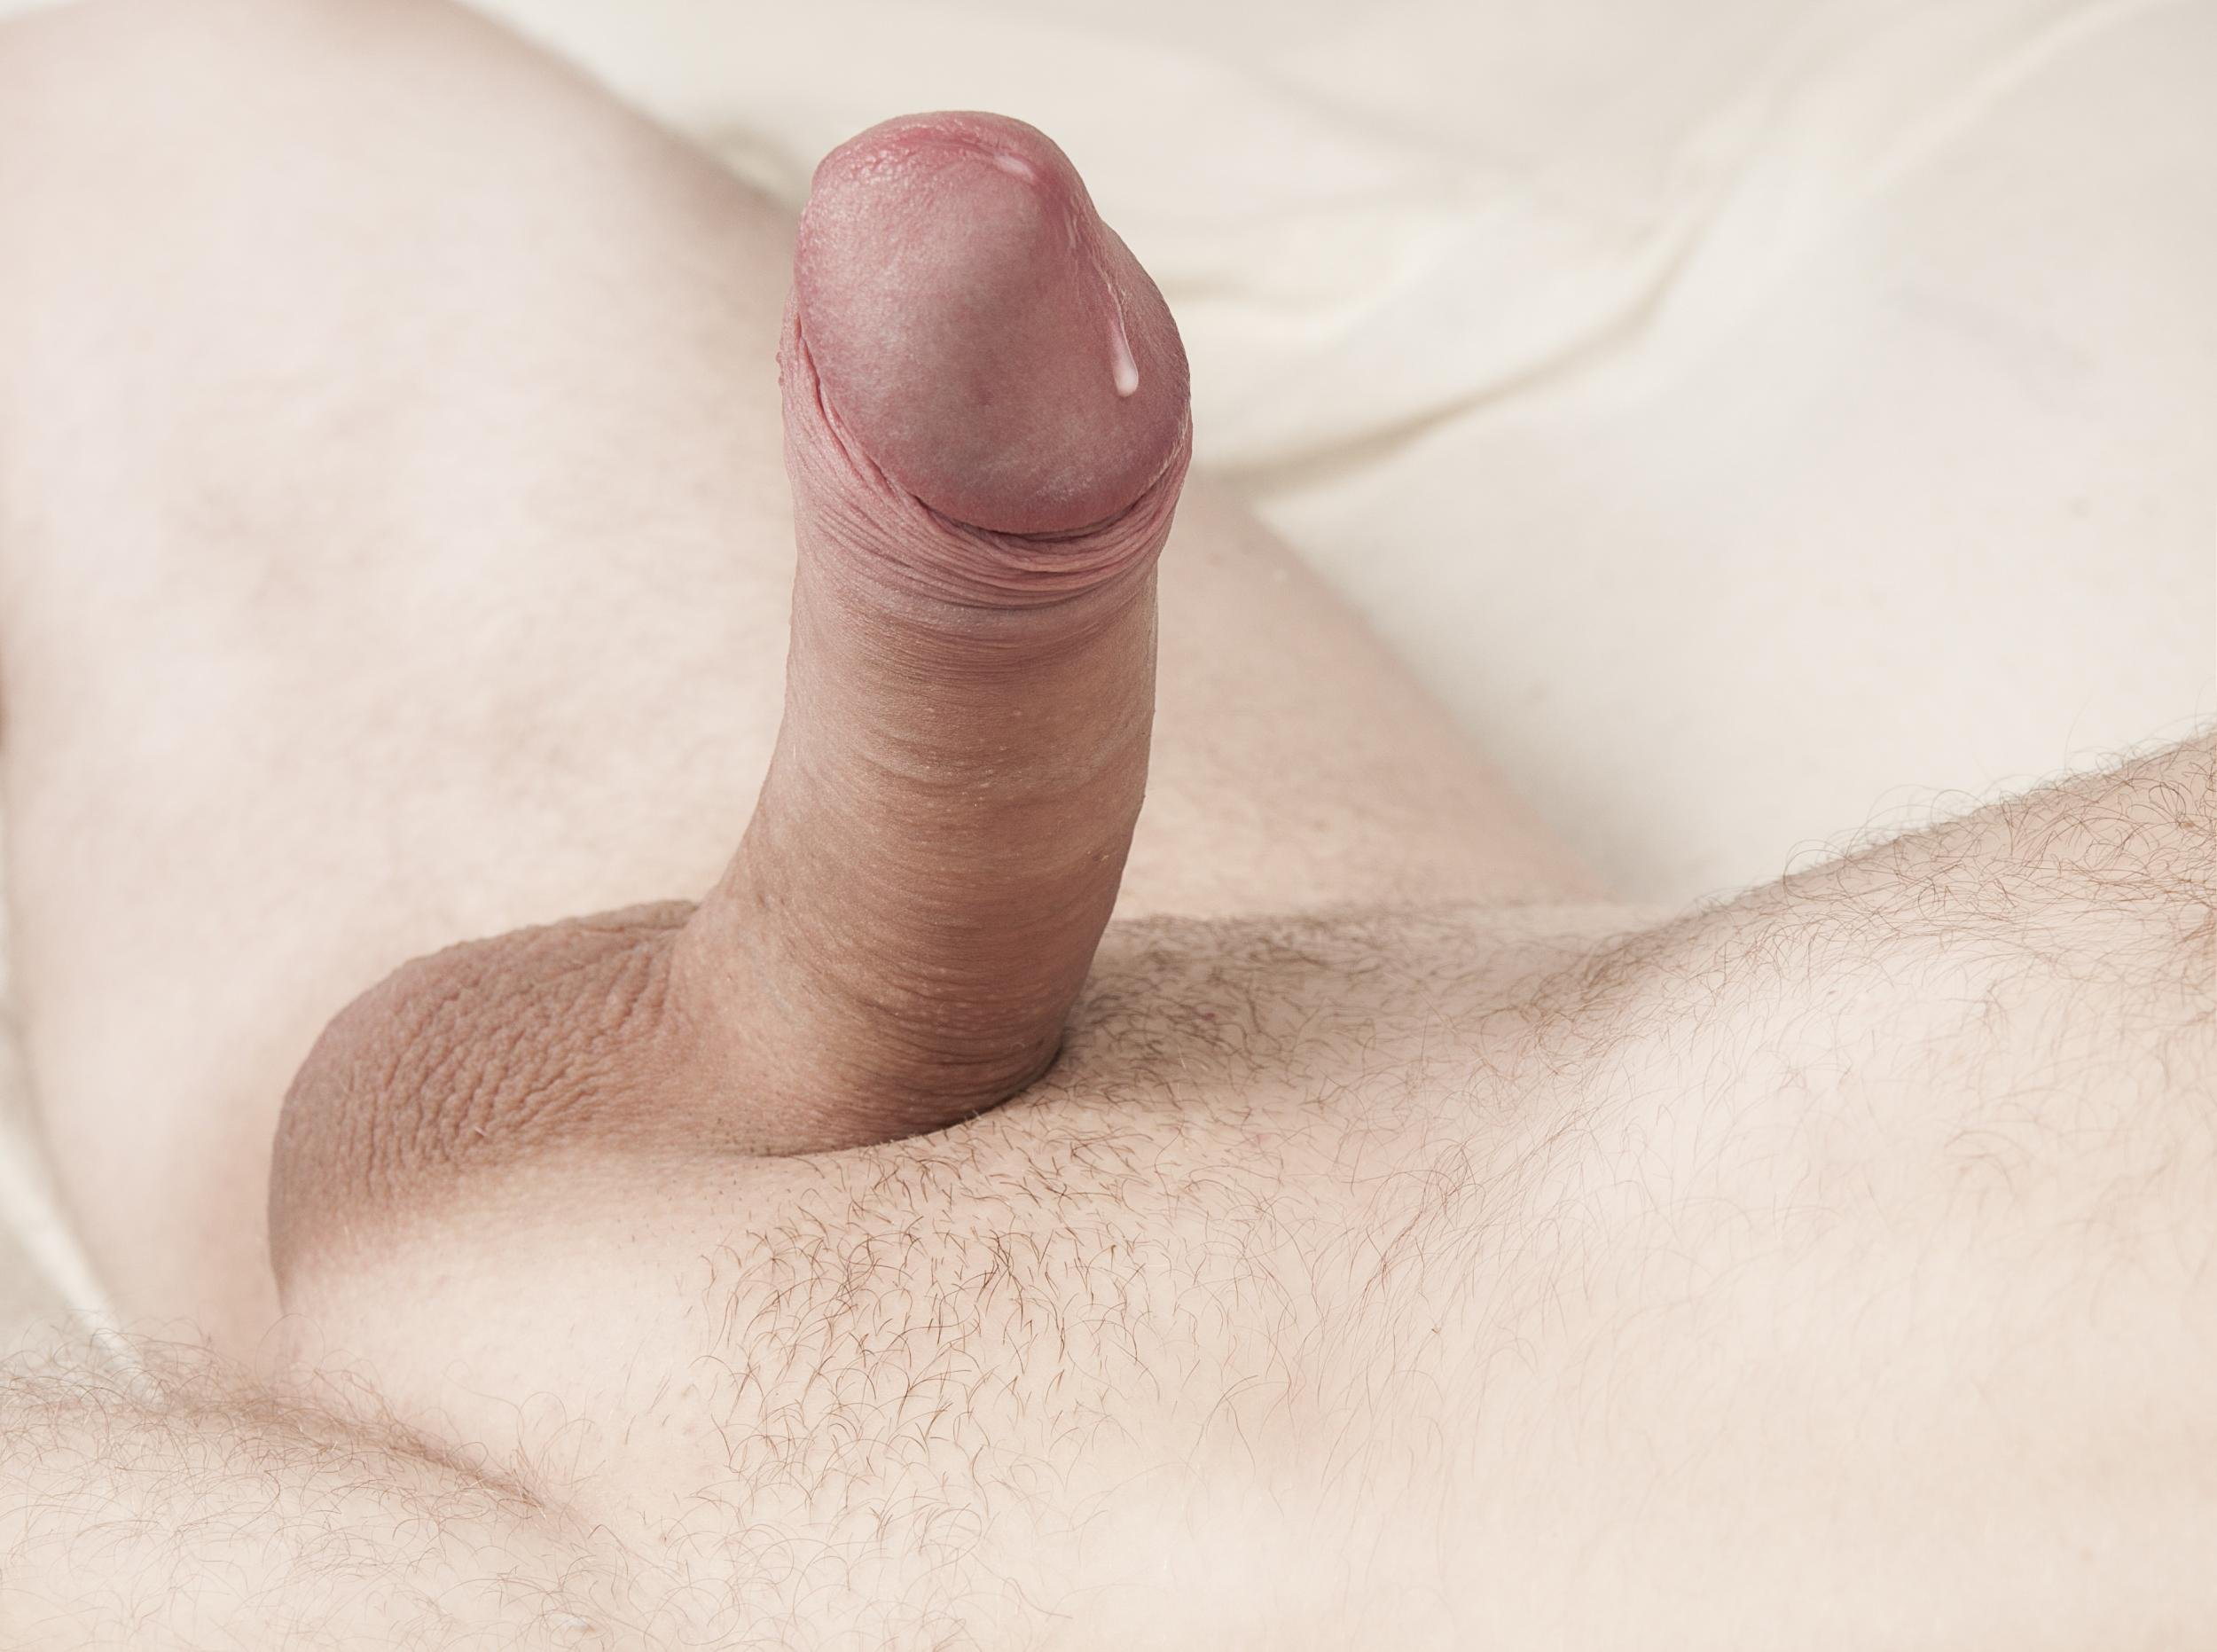 tiny-shaved-dick-pics